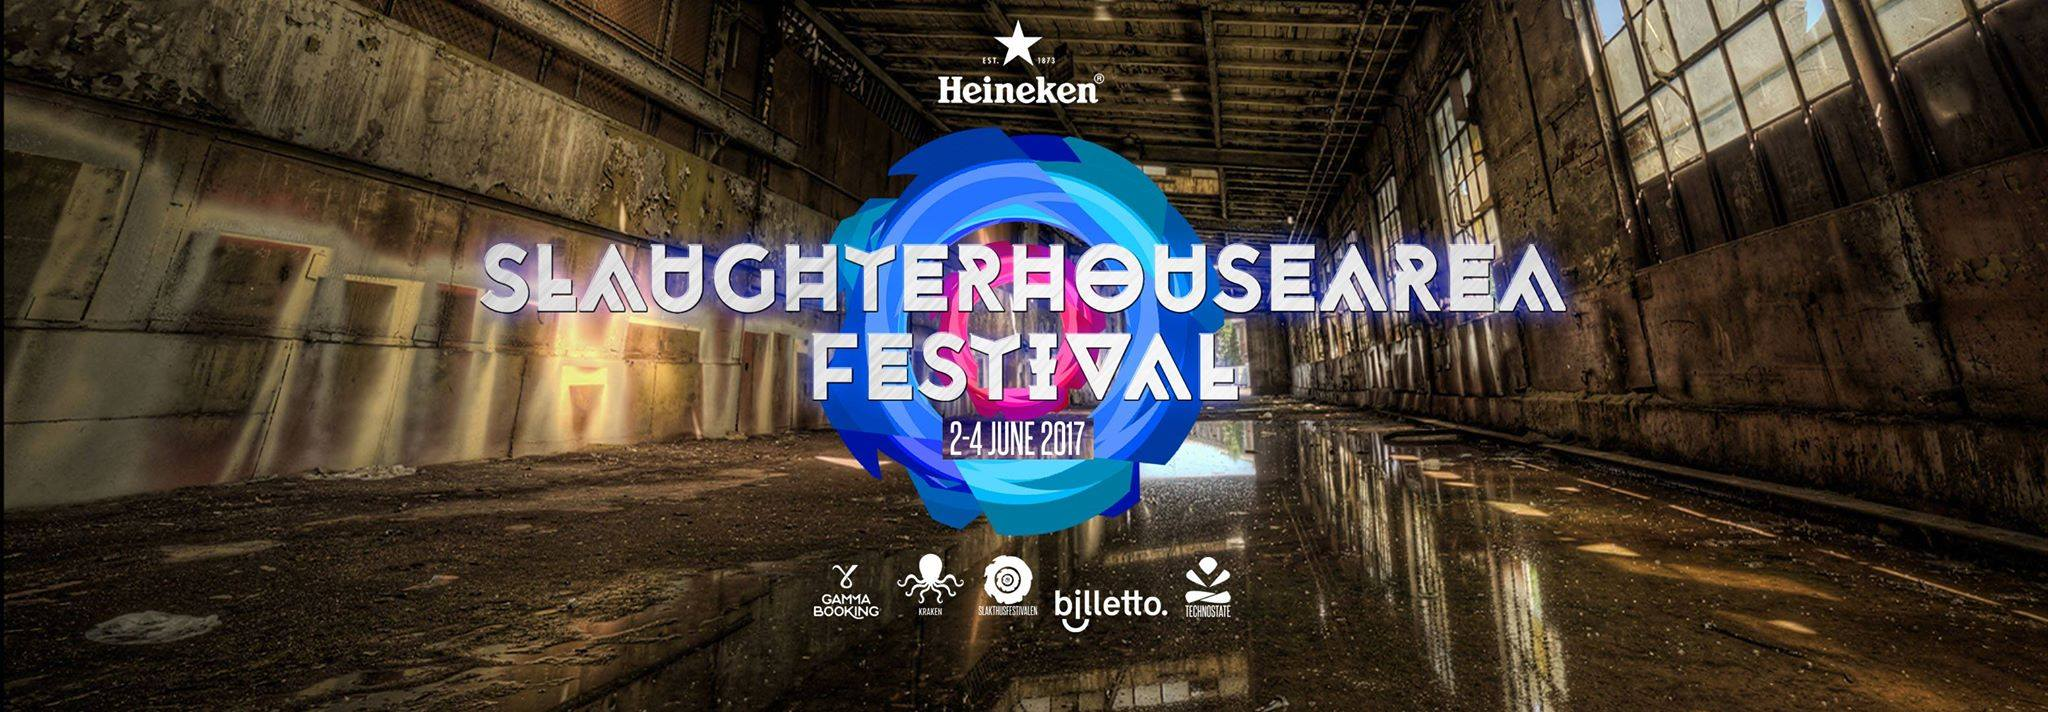 slaughterhouse area festival